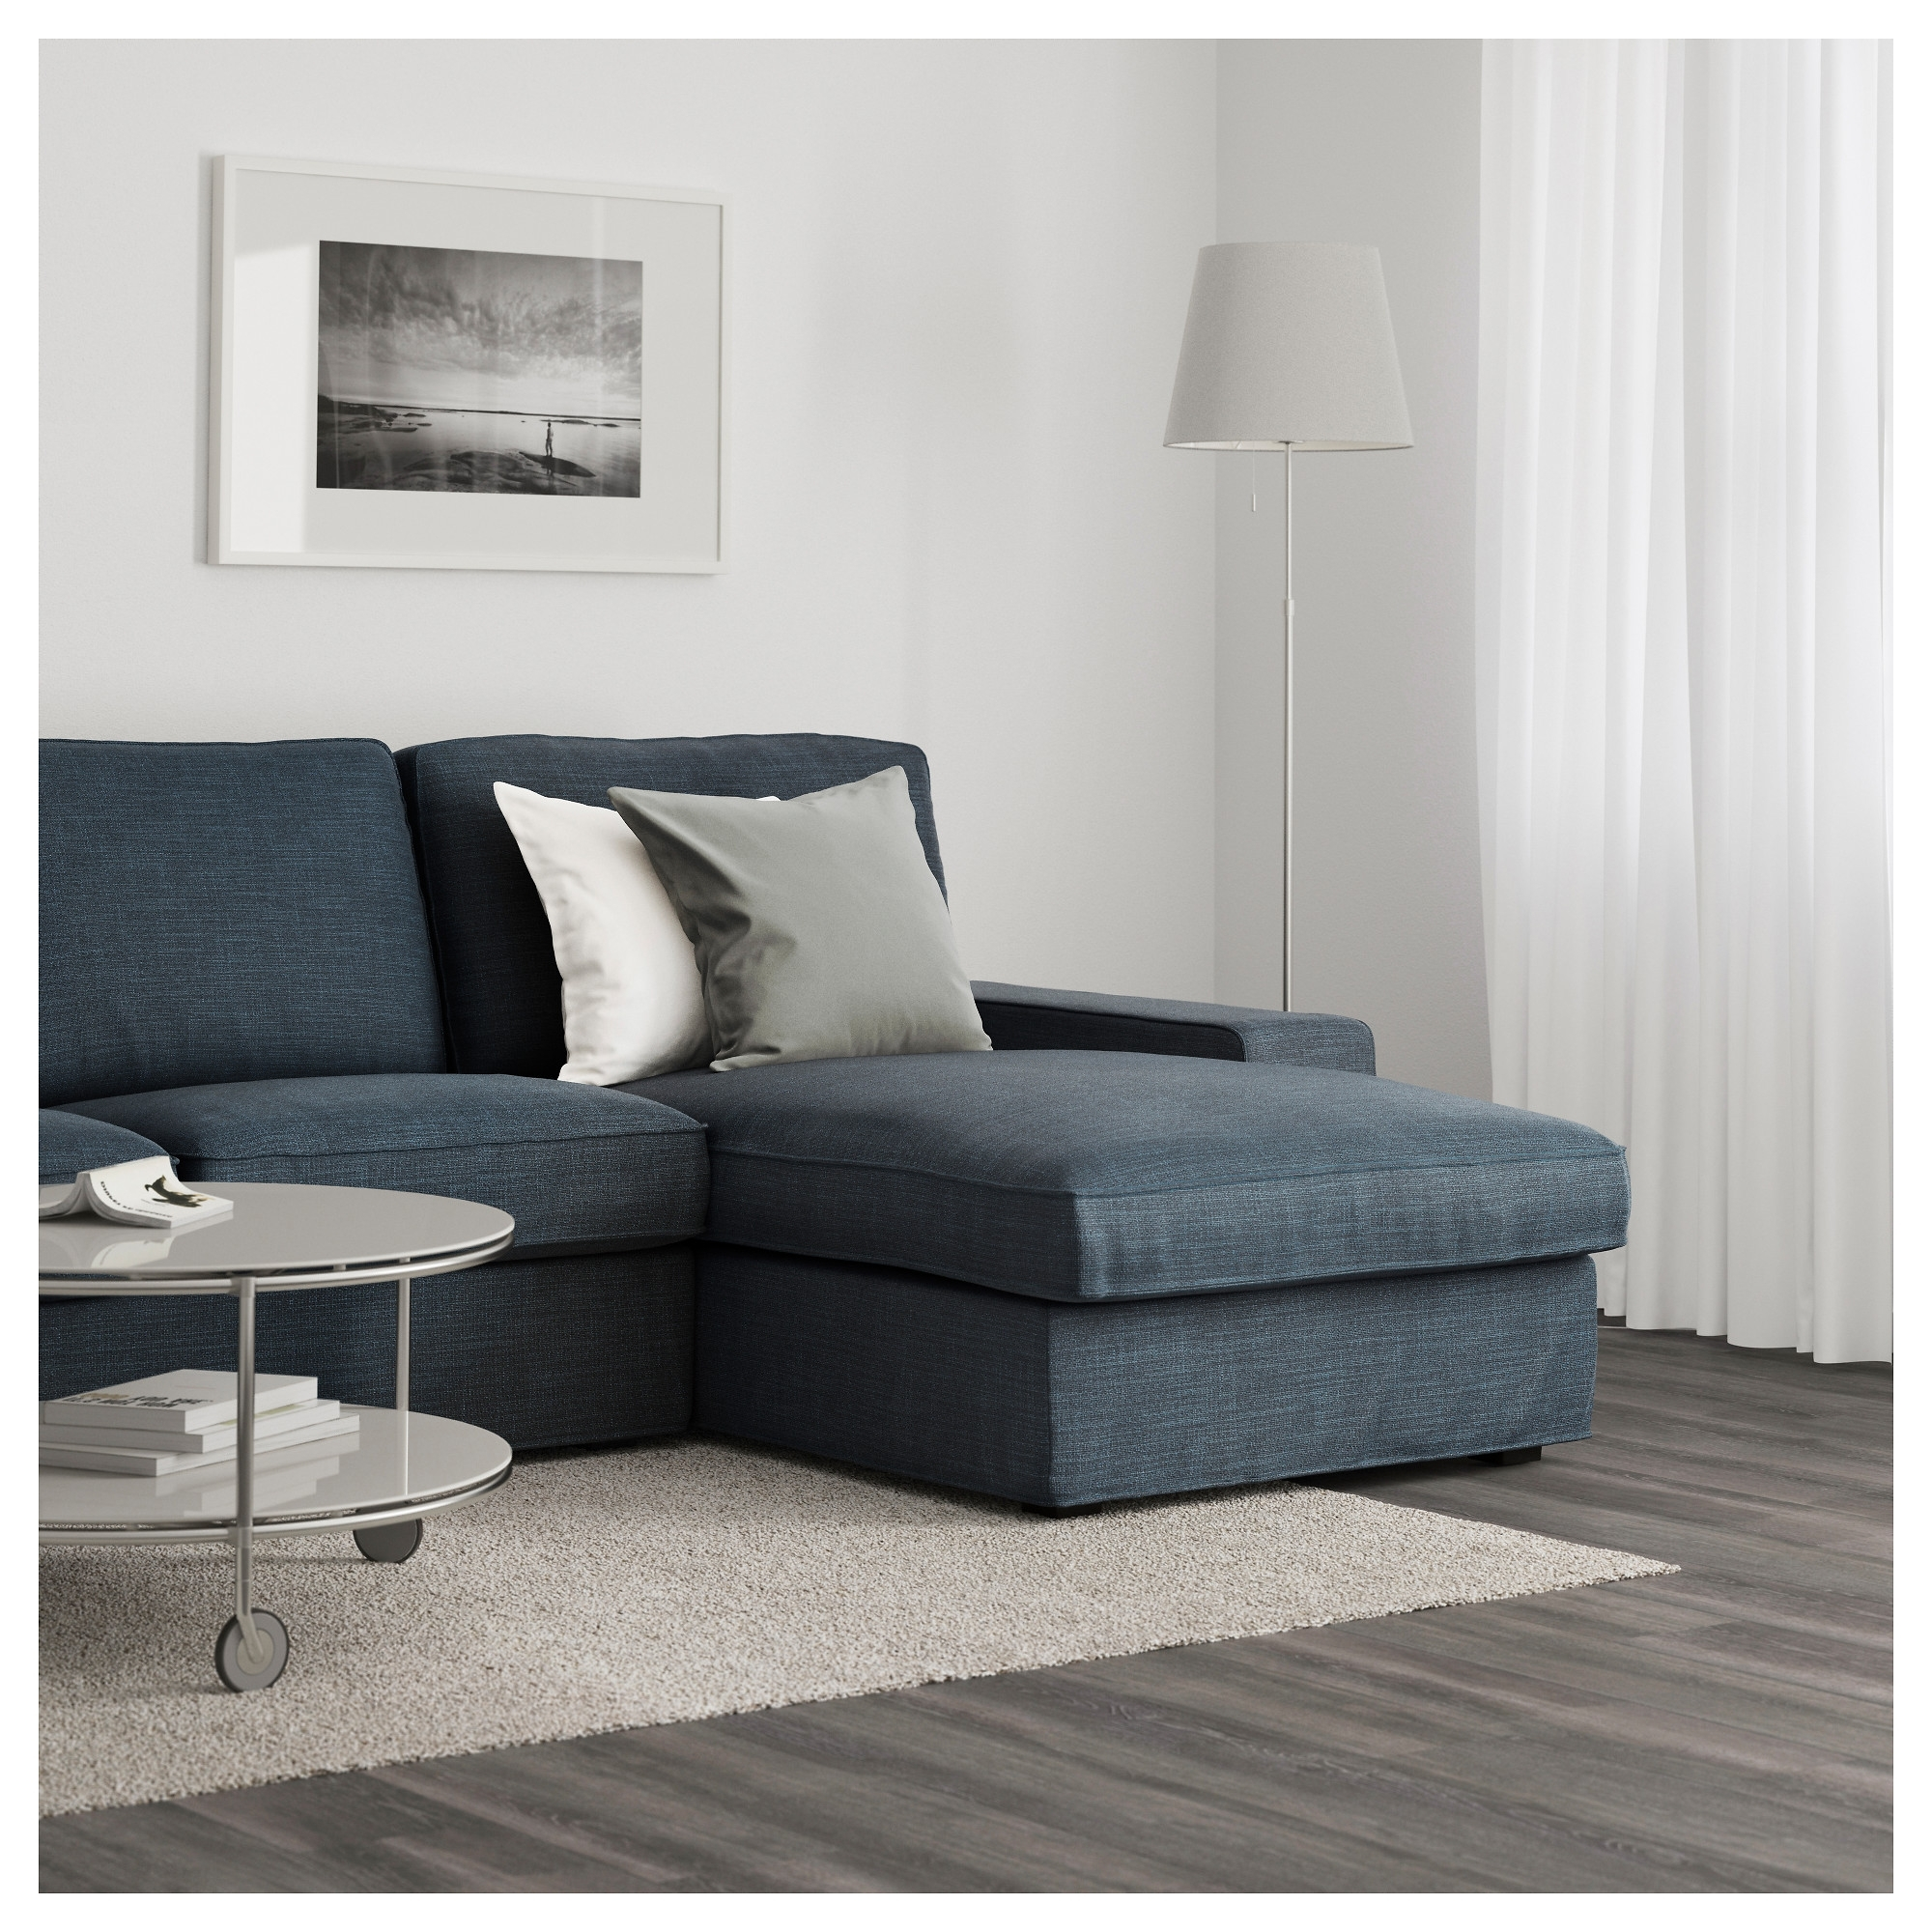 Kivik Sofa – With Chaise/hillared Beige – Ikea Regarding Widely Used Ikea Kivik Chaises (Gallery 3 of 15)